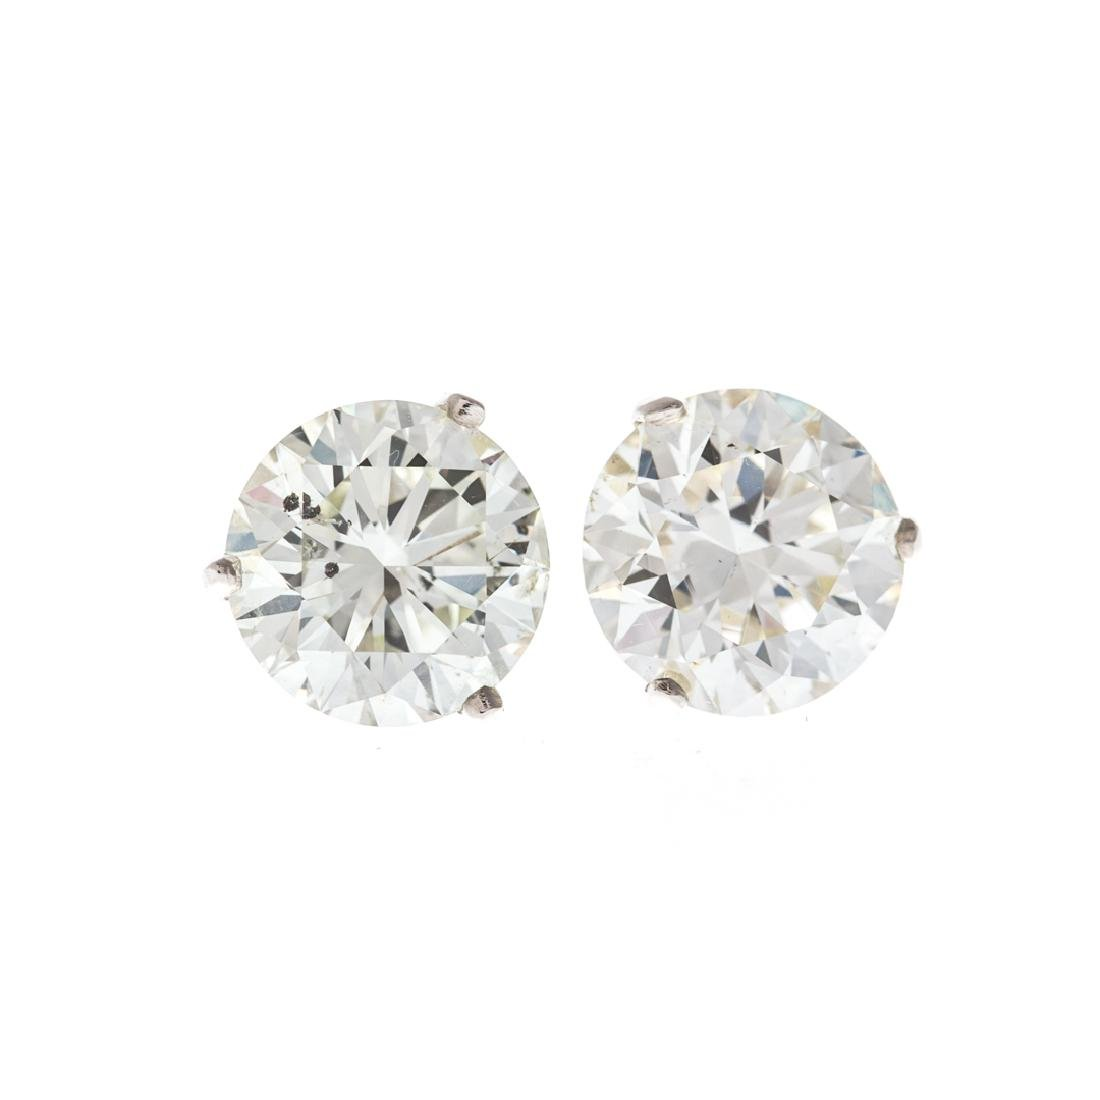 A Pair of Diamond Solitaire Earrings 4.45 Cts